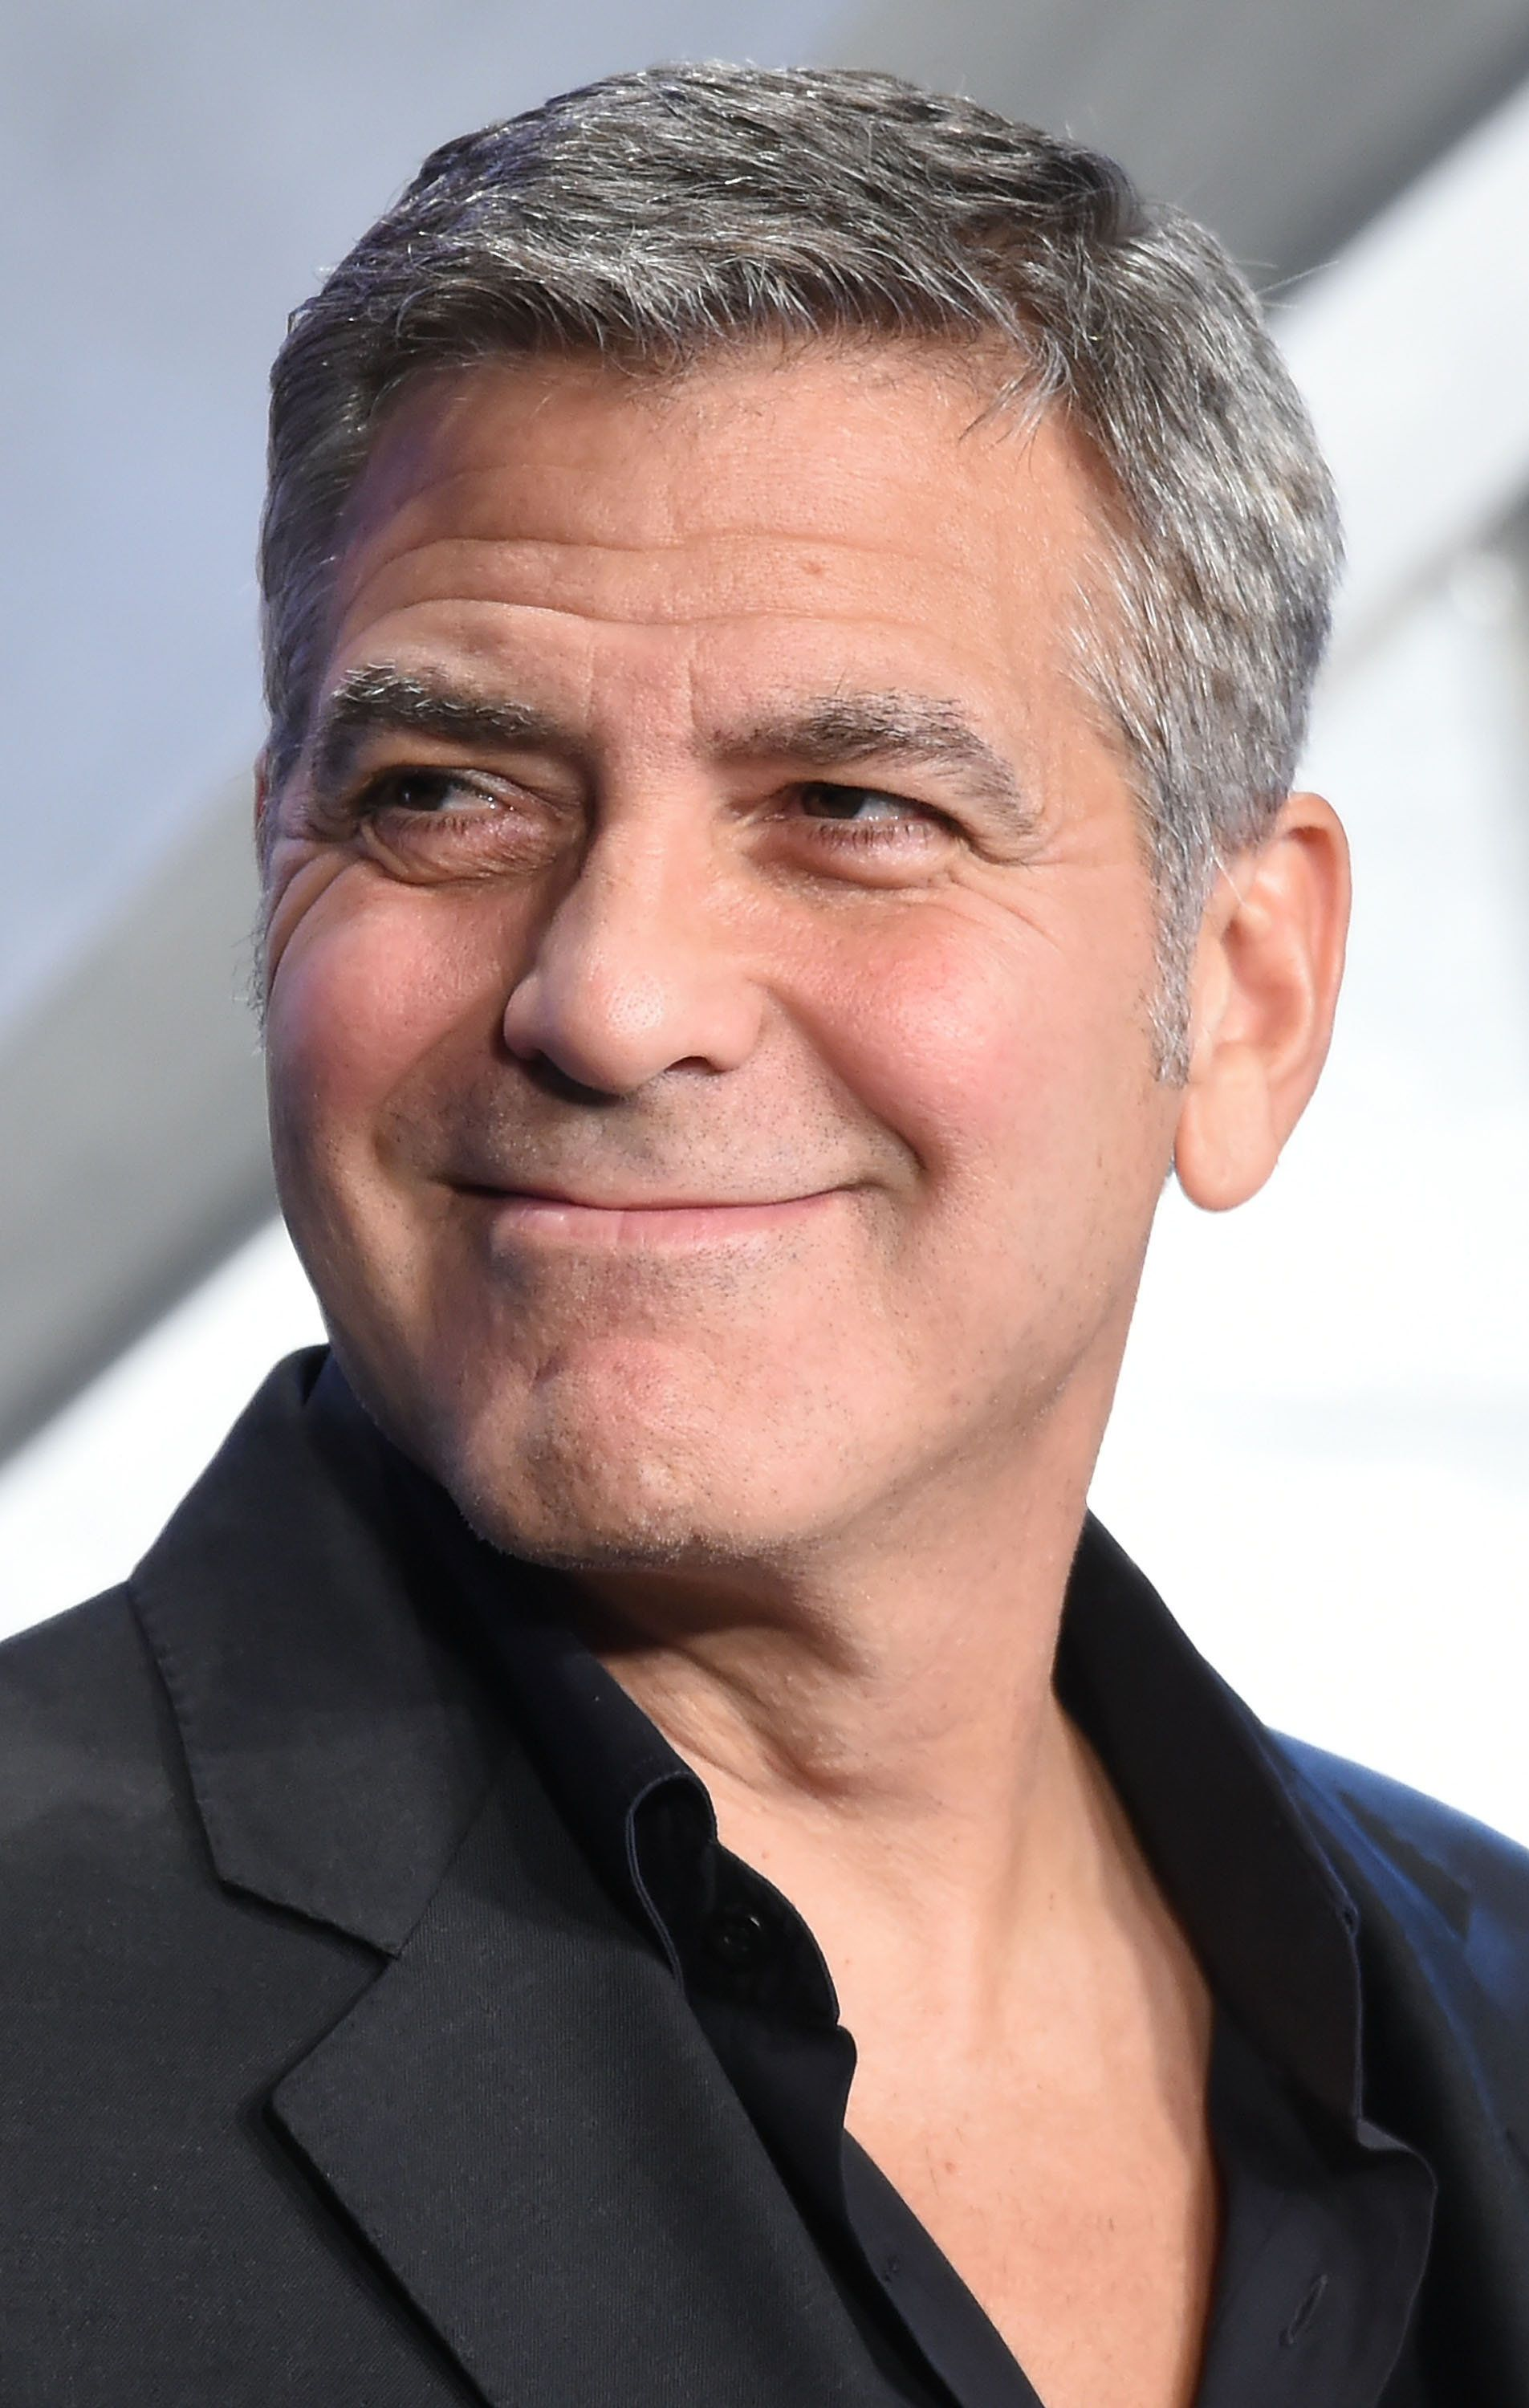 TOKYO, JAPAN - MAY 25:  George Clooney attends the Tokyo premiere of 'Tomorrowland' at Roppongi Hills on May 25, 2015 in Tokyo, Japan.  (Photo by Jun Sato/WireImage)